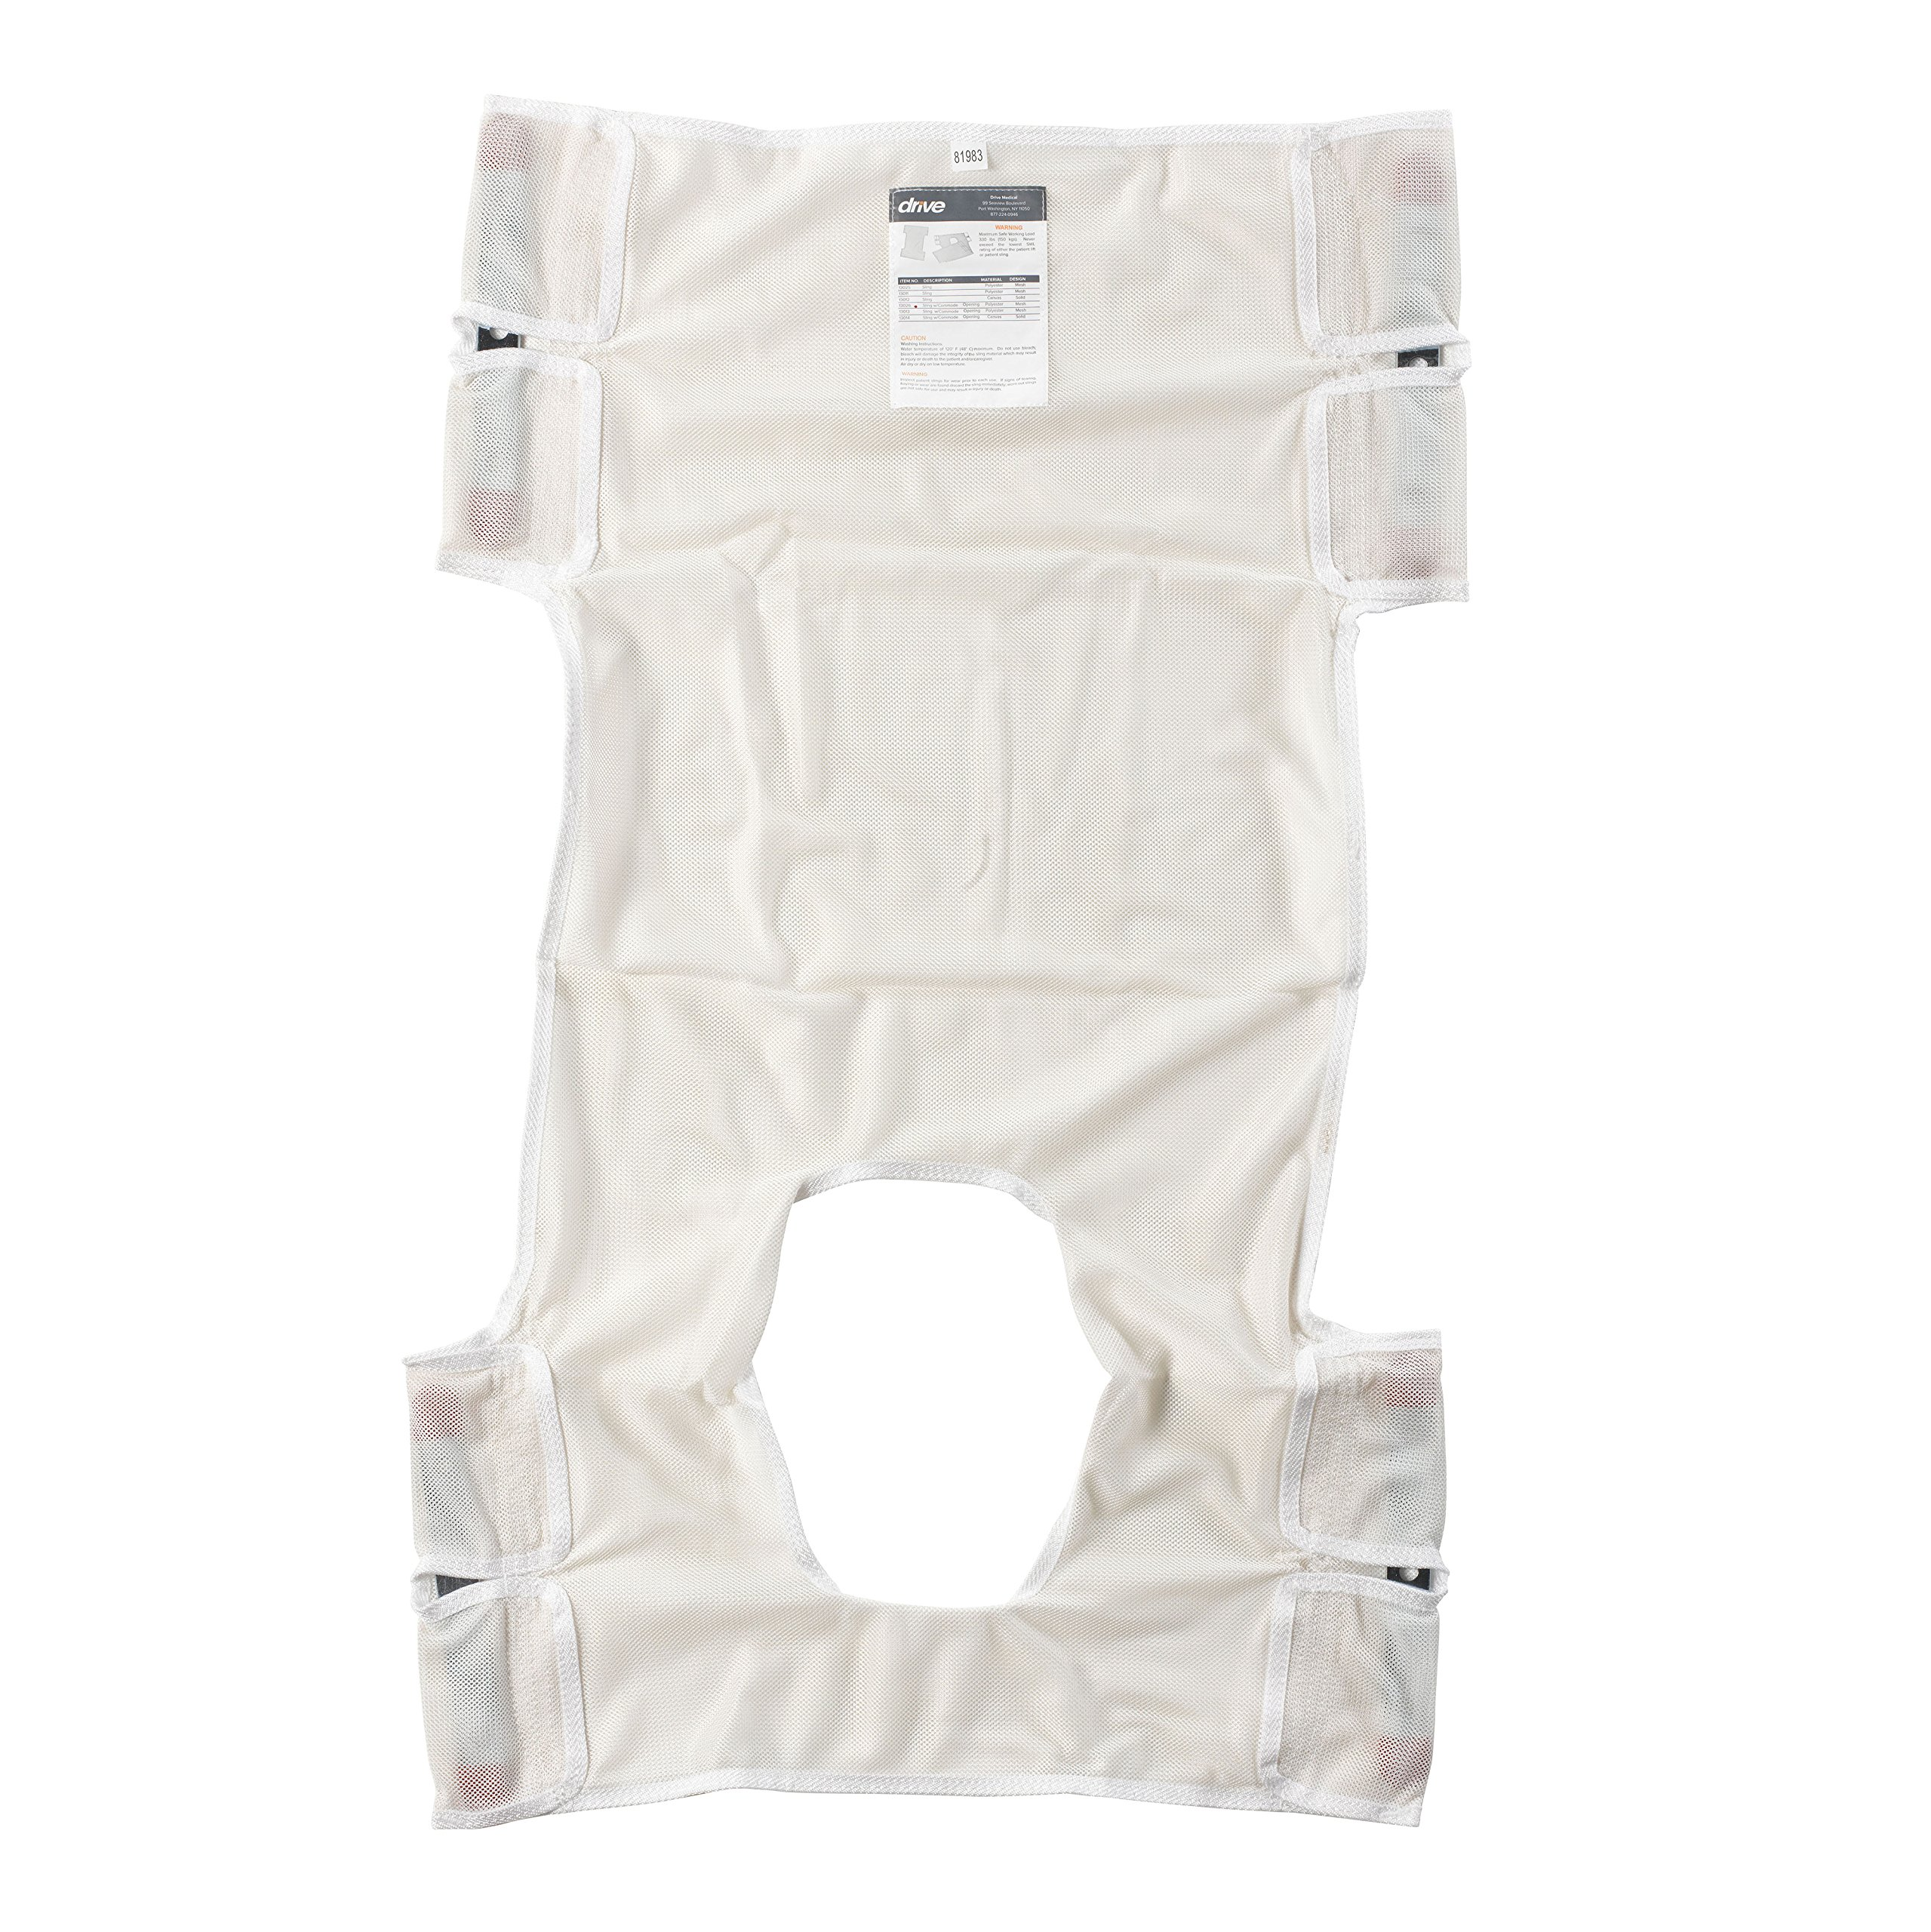 Drive Medical Patient Lift Sling, Polyester Mesh with Commode Cutout by Drive Medical